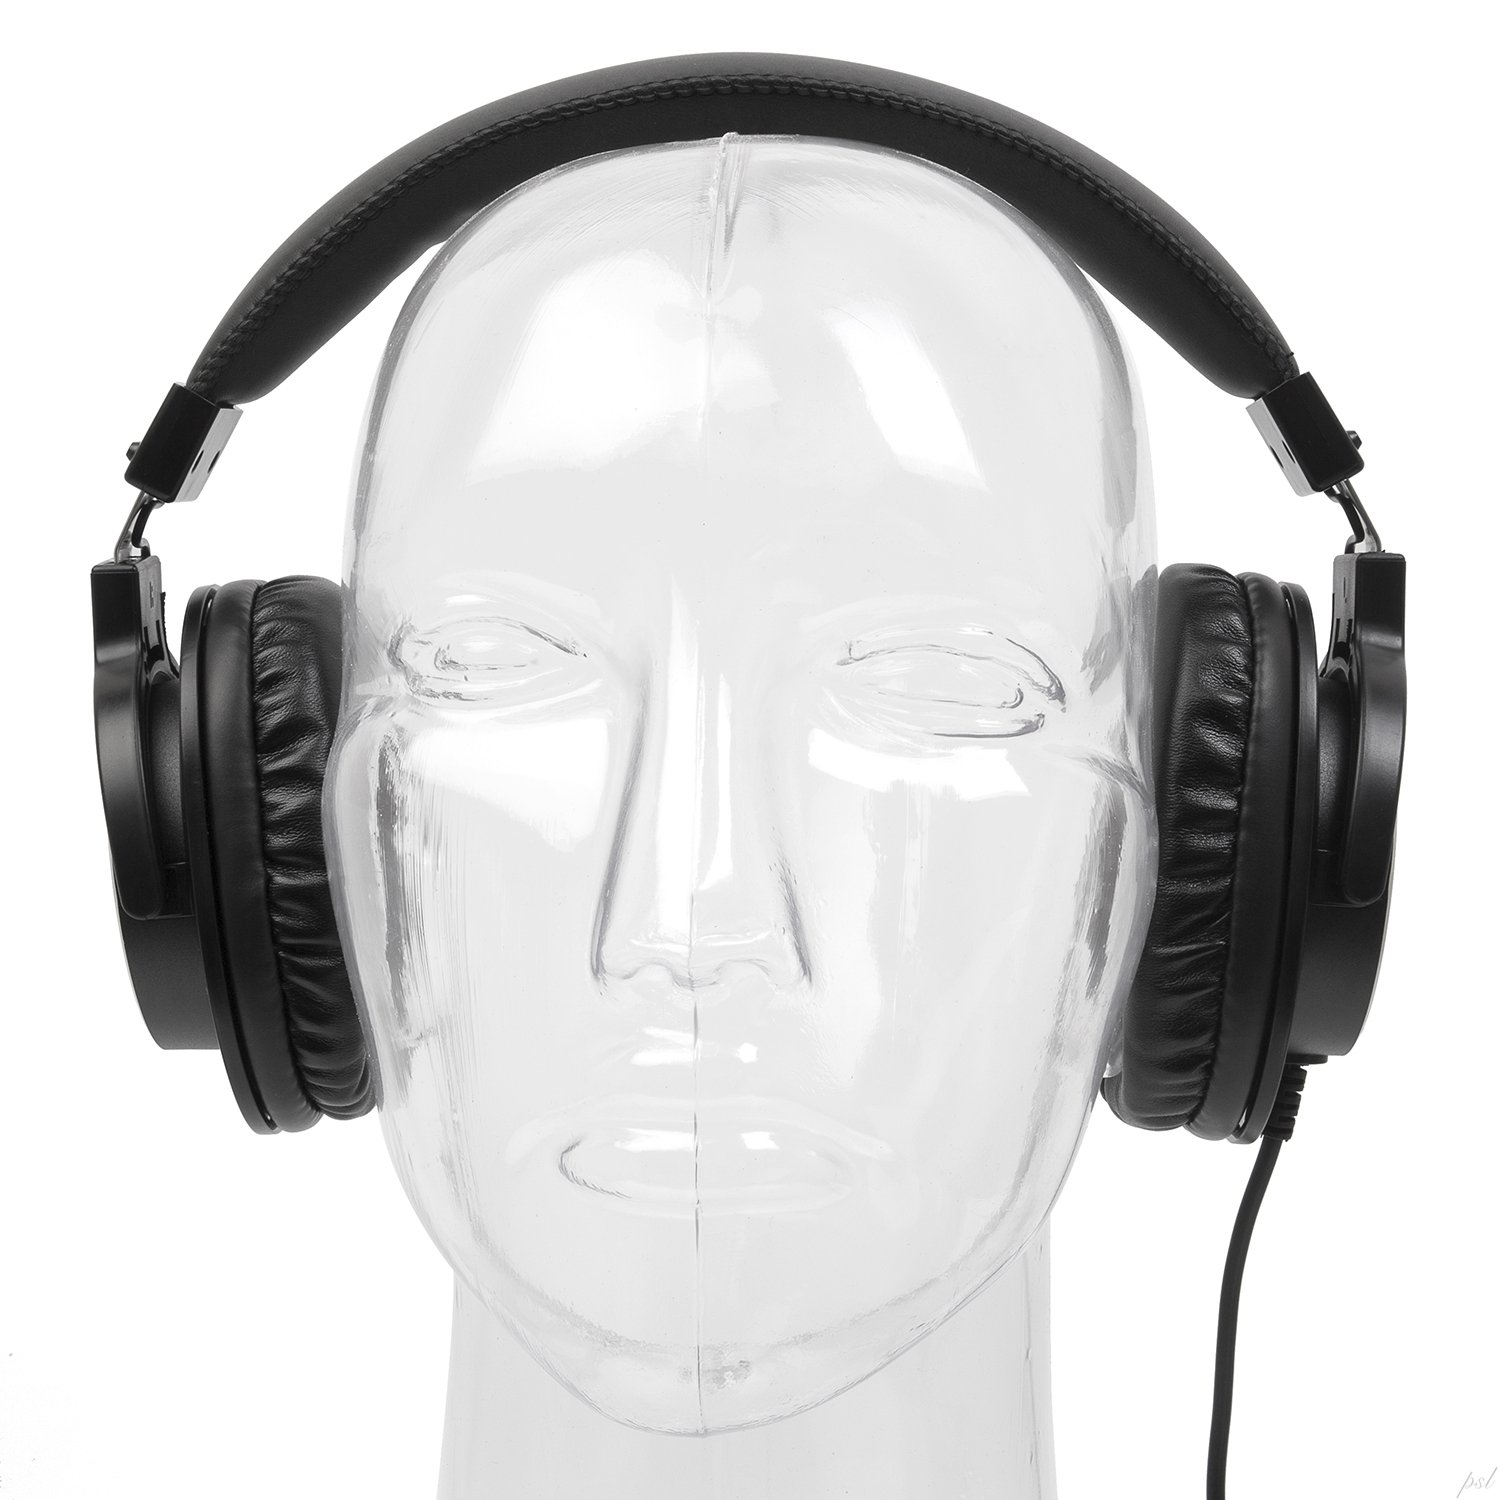 LyxPro HAS-10 Closed Back Over-Ear Professional Studio Monitor & Mixing Headphones,Music Listening,Piano,Sound Isolation, Lightweight by LyxPro (Image #3)